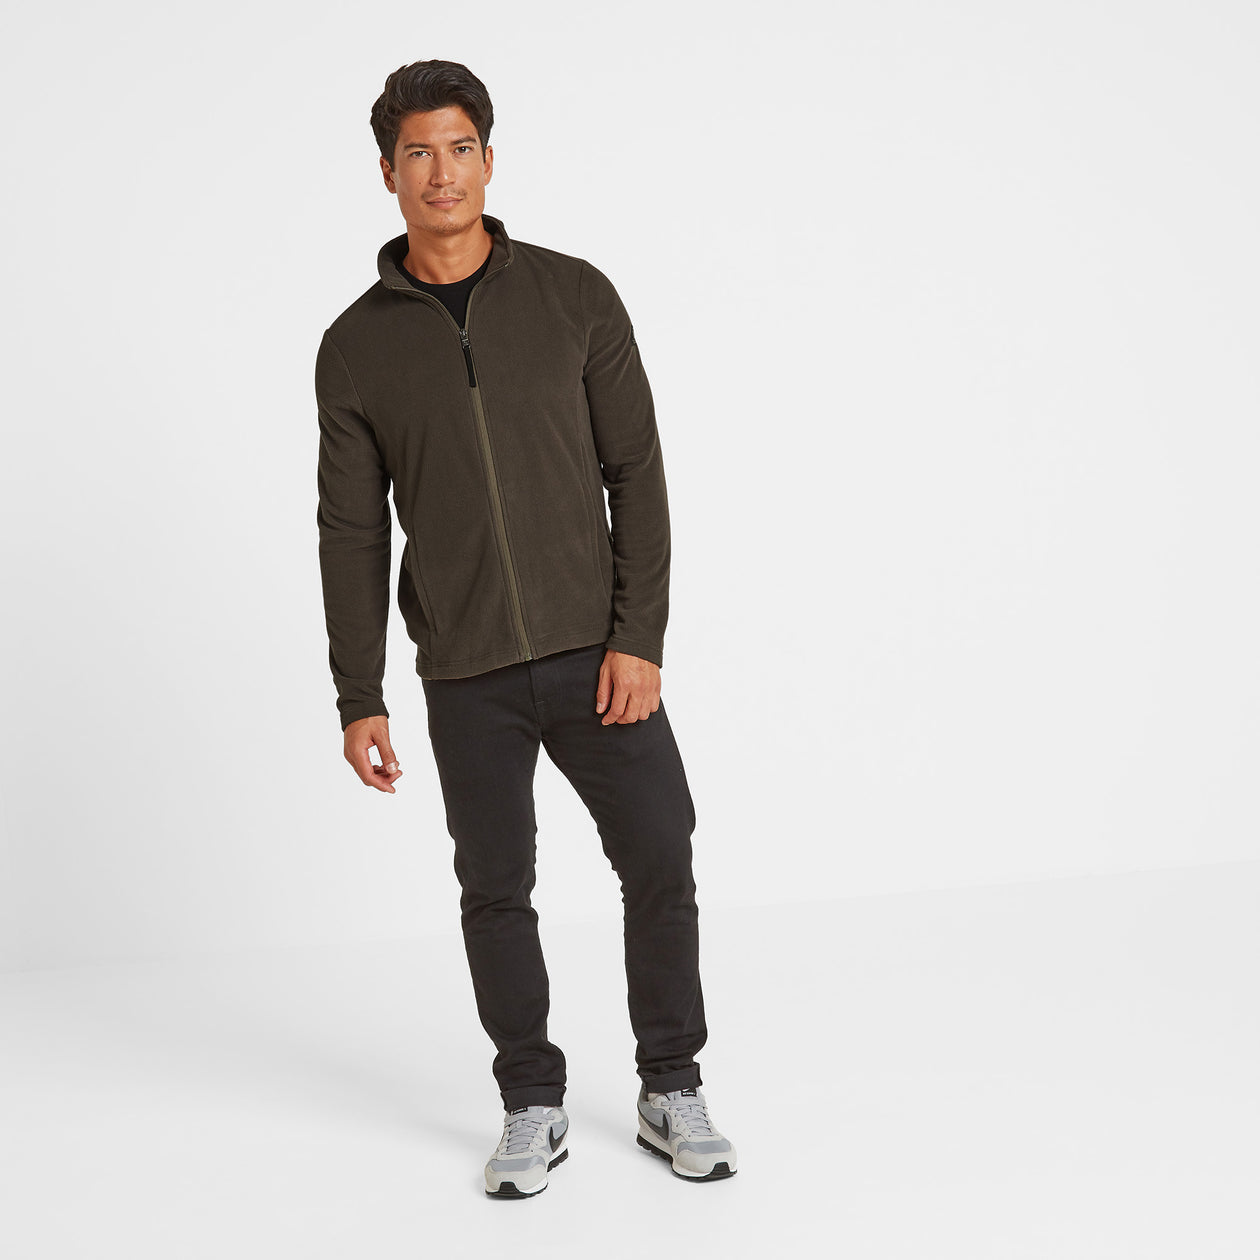 Shire Mens Fleece Jacket - Khaki image 4